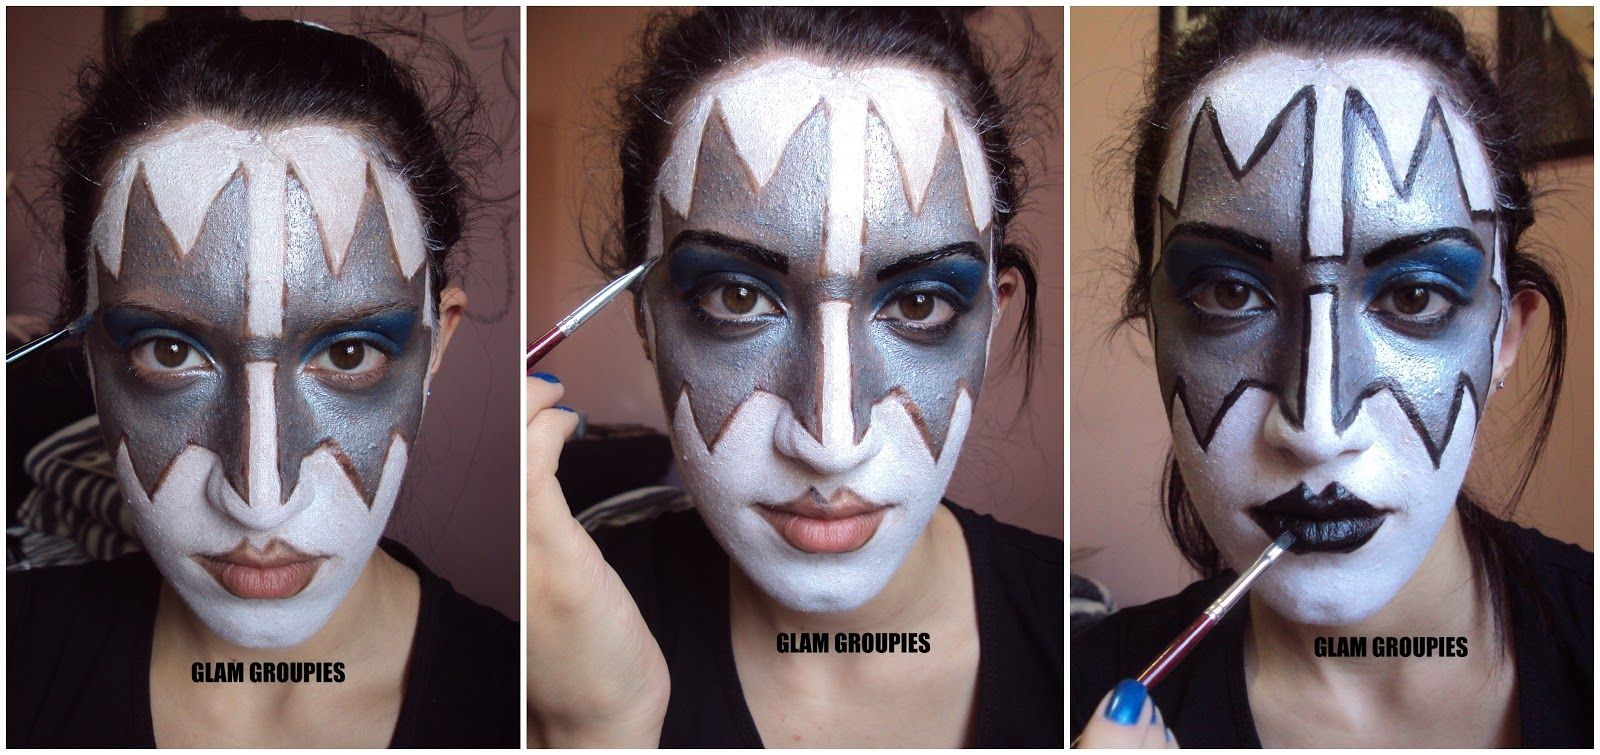 Spaceman Ace Frehley Tommy Thayer Ace Frehley Halloween Makeup